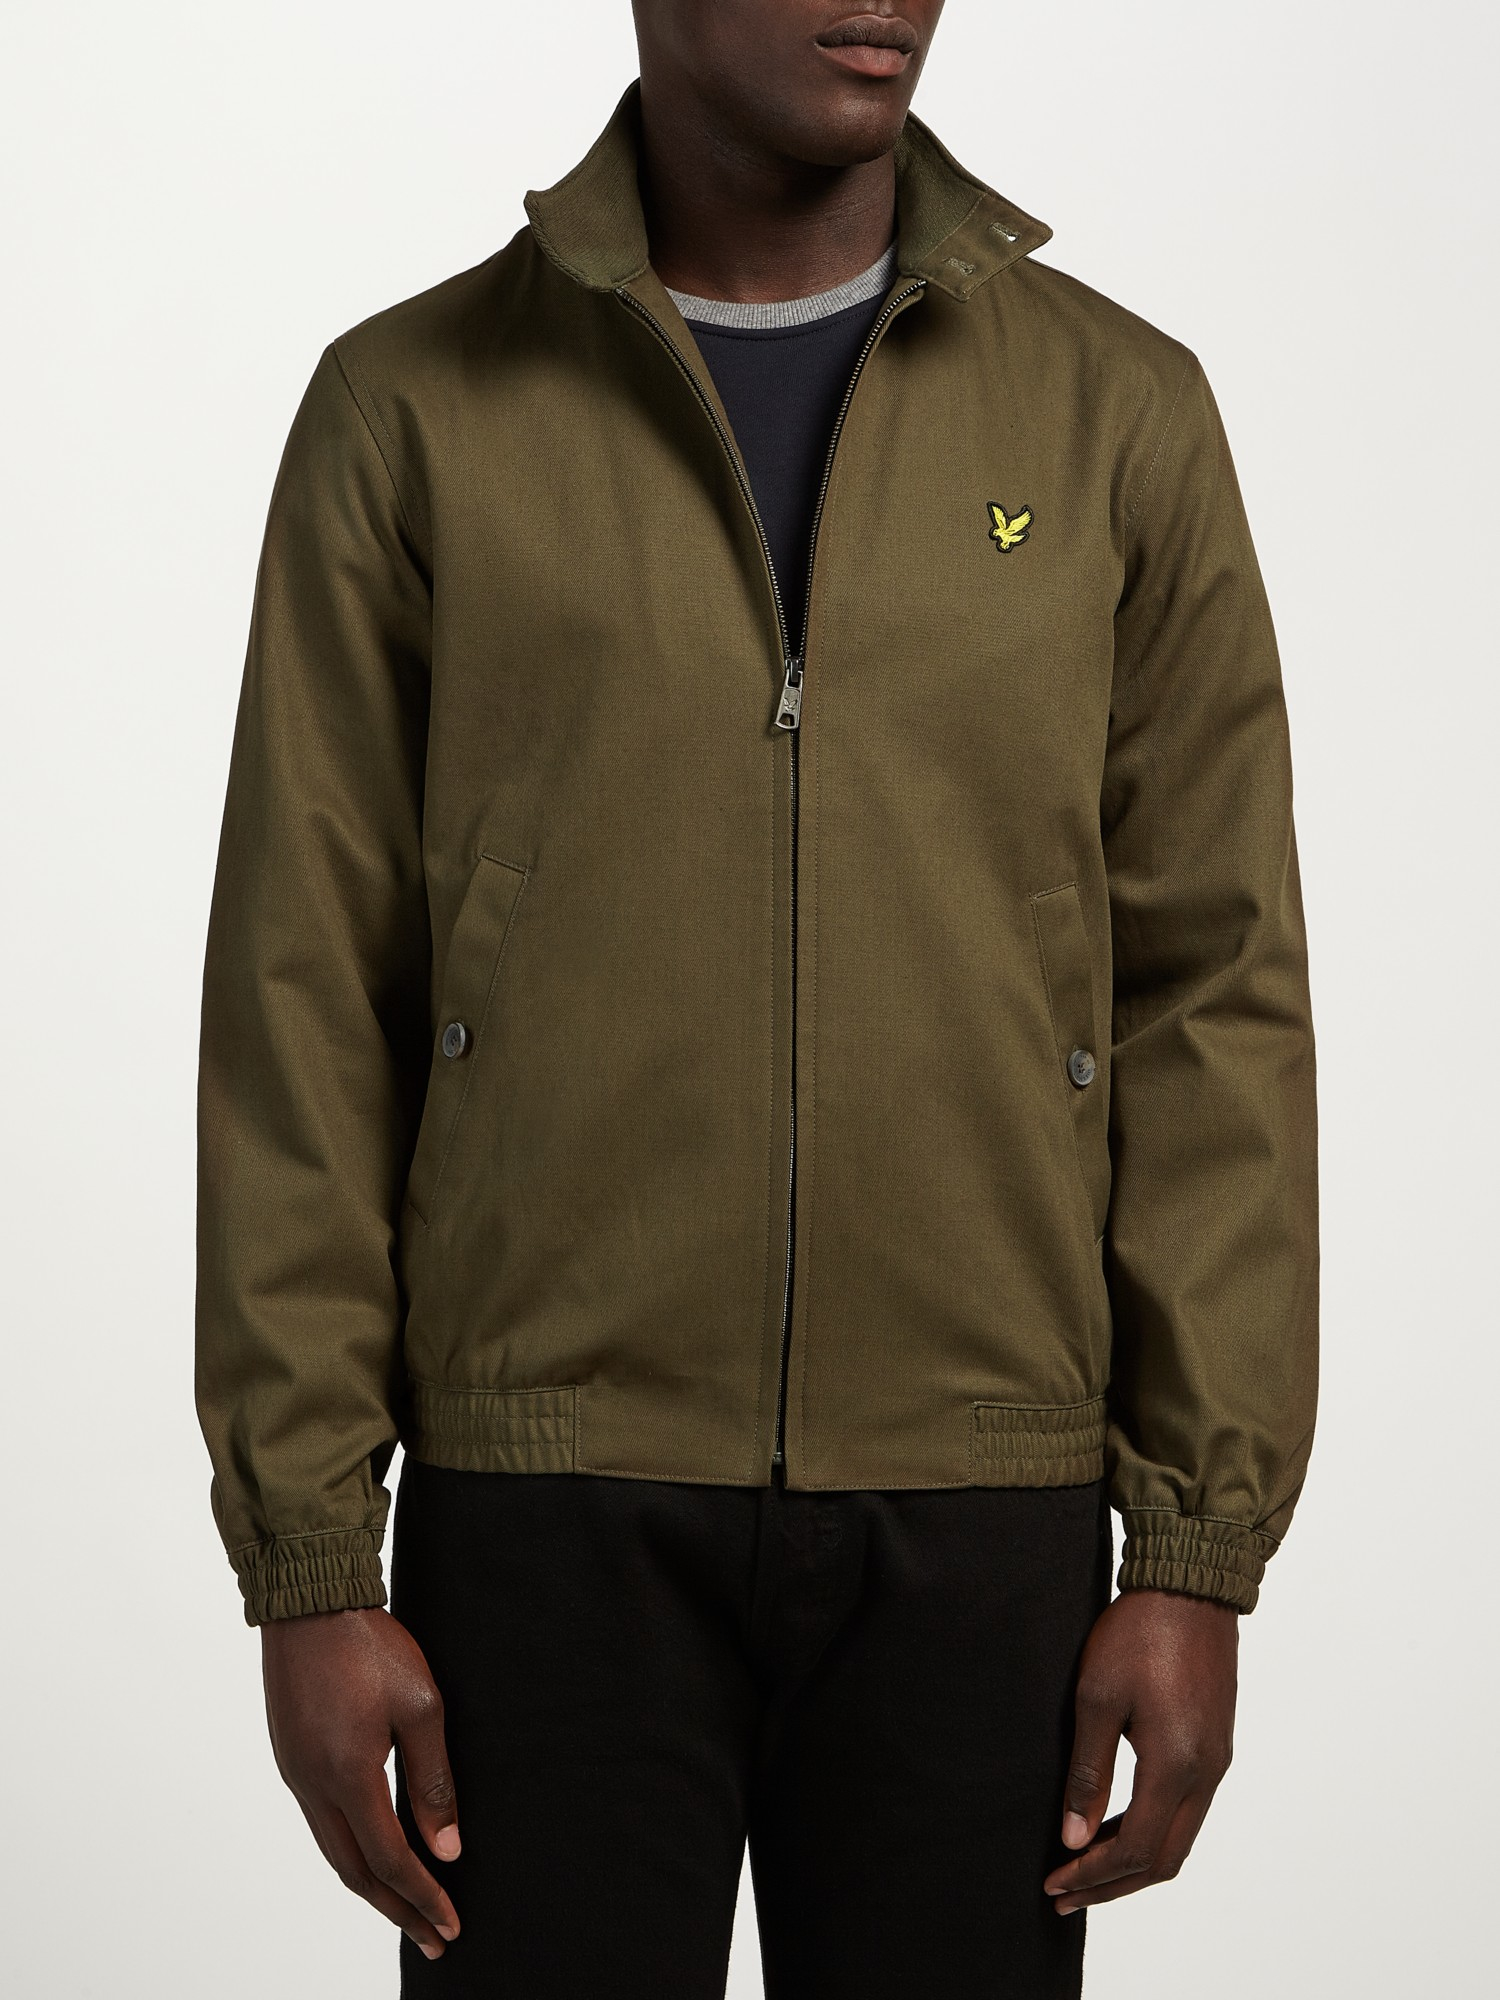 lyst lyle scott harrington jacket in green for men. Black Bedroom Furniture Sets. Home Design Ideas